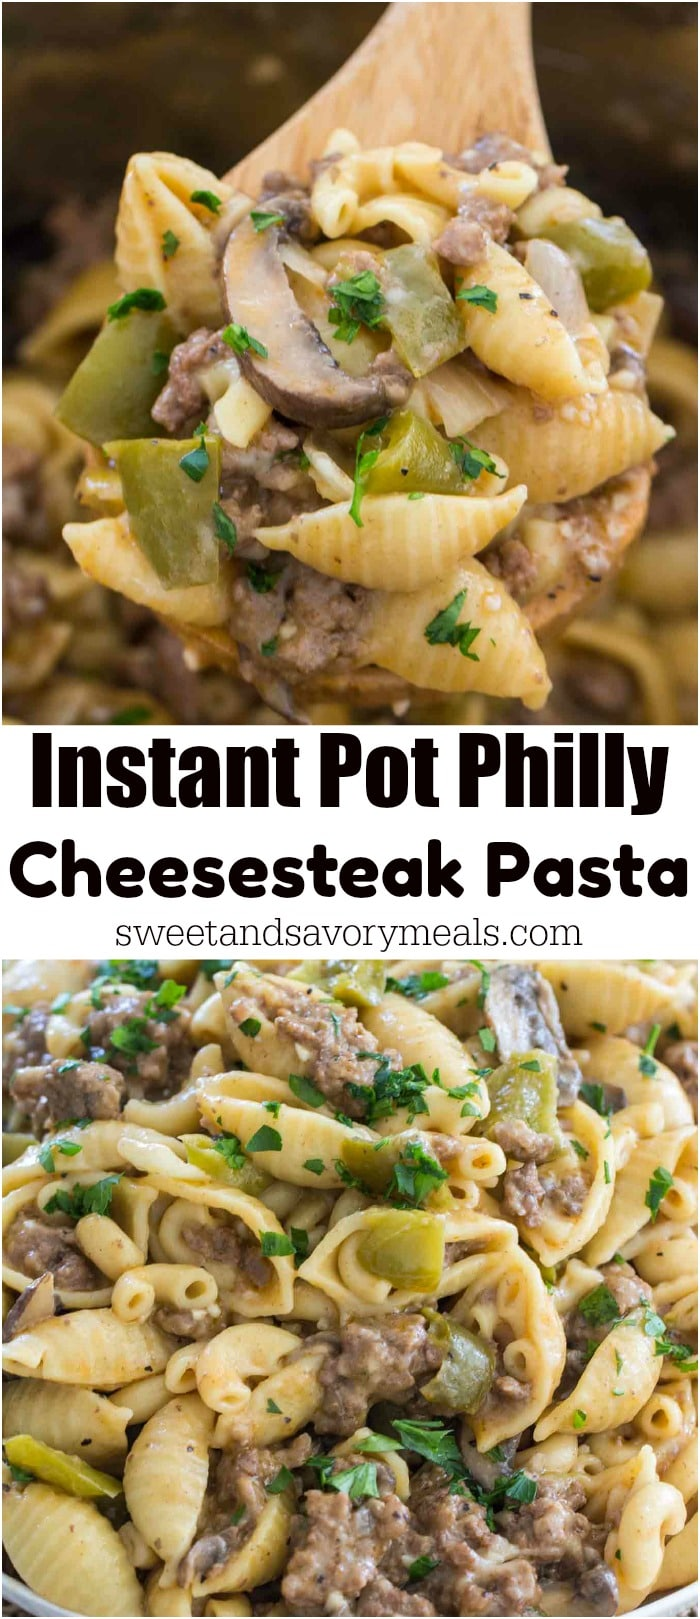 image of instant pot cheesesteak pasta for pinterest